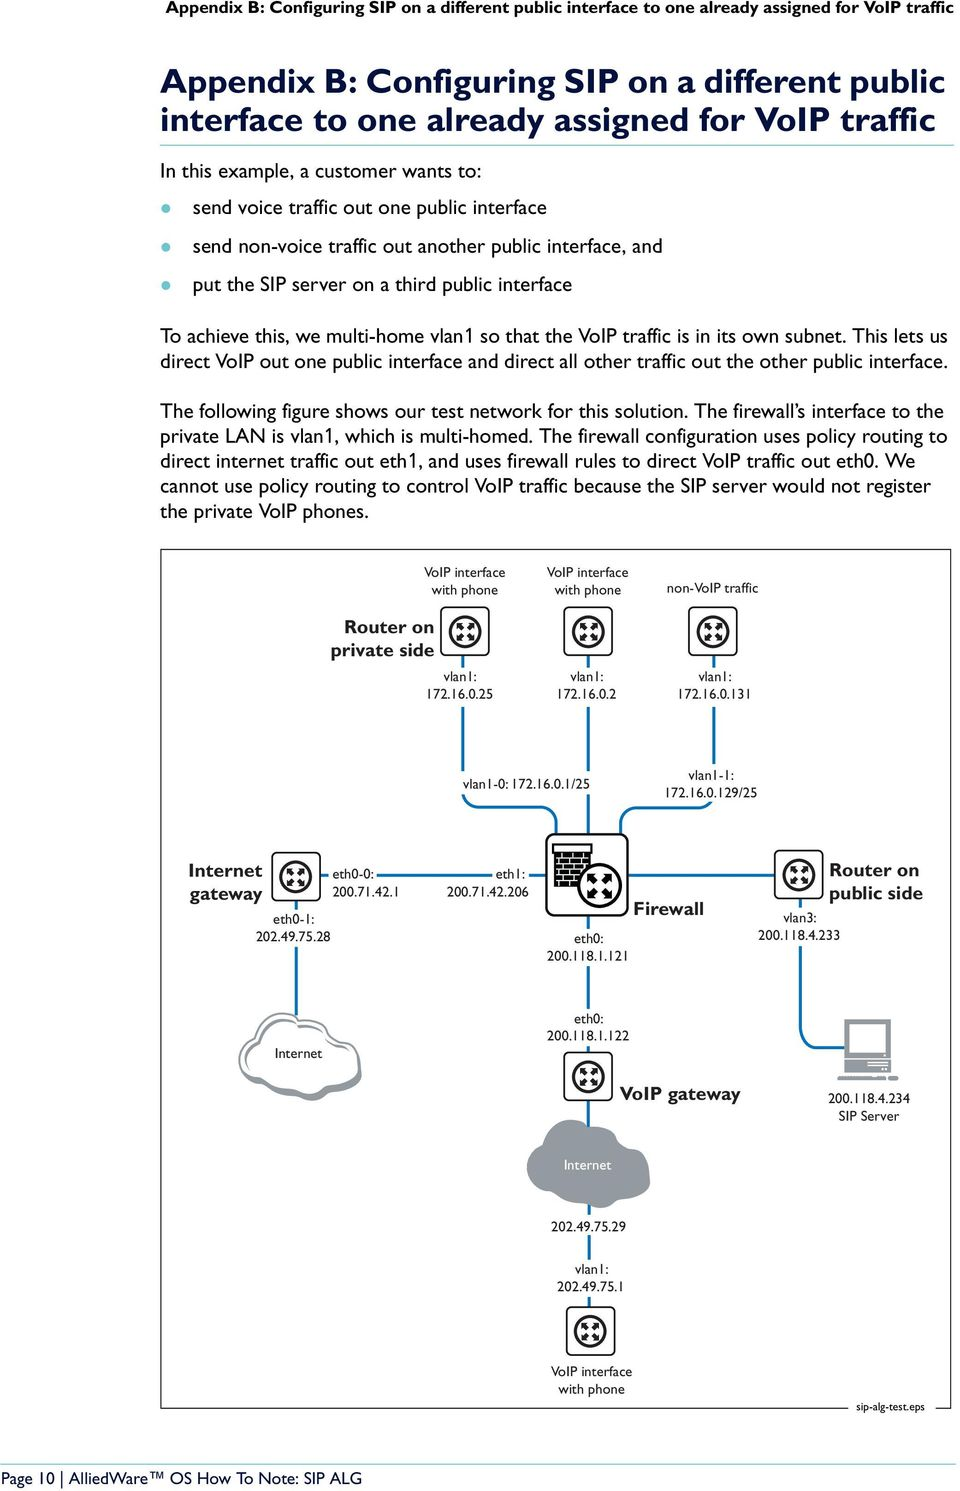 achieve this, we multi-home vlan1 so that the VoIP traffic is in its own subnet. This lets us direct VoIP out one public interface and direct all other traffic out the other public interface.